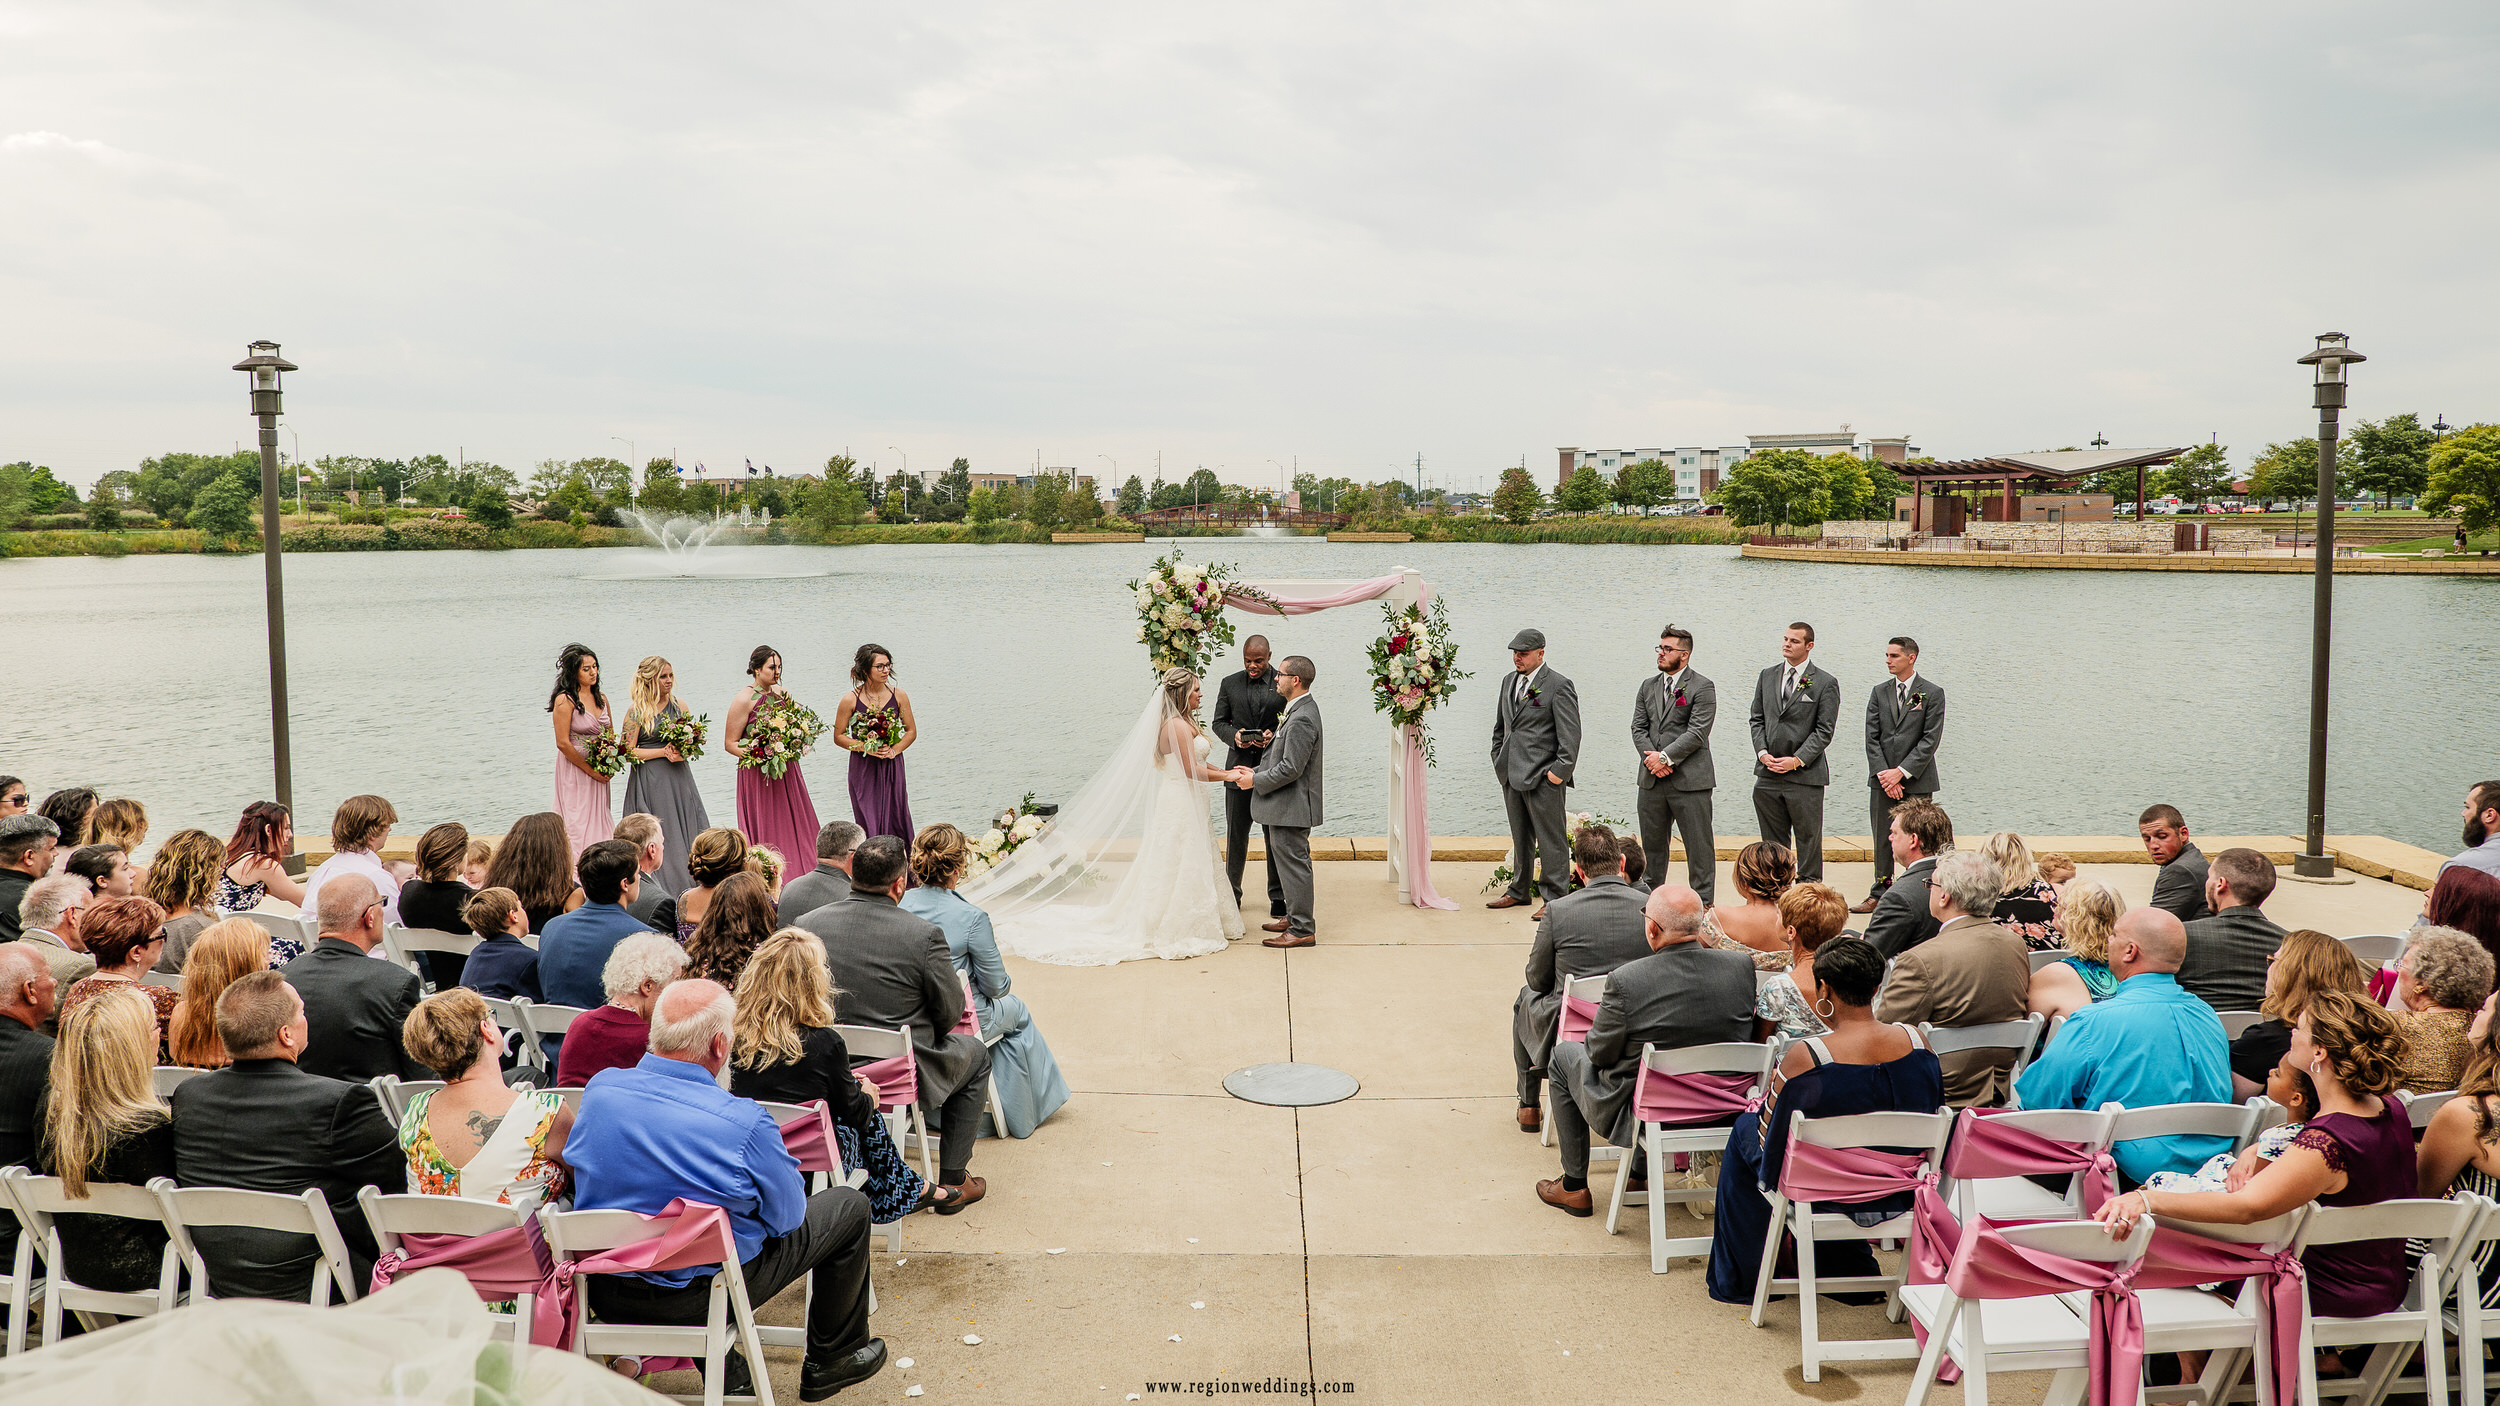 Outdoor wedding in September at the Centennial Park terrace overlooking the lake.